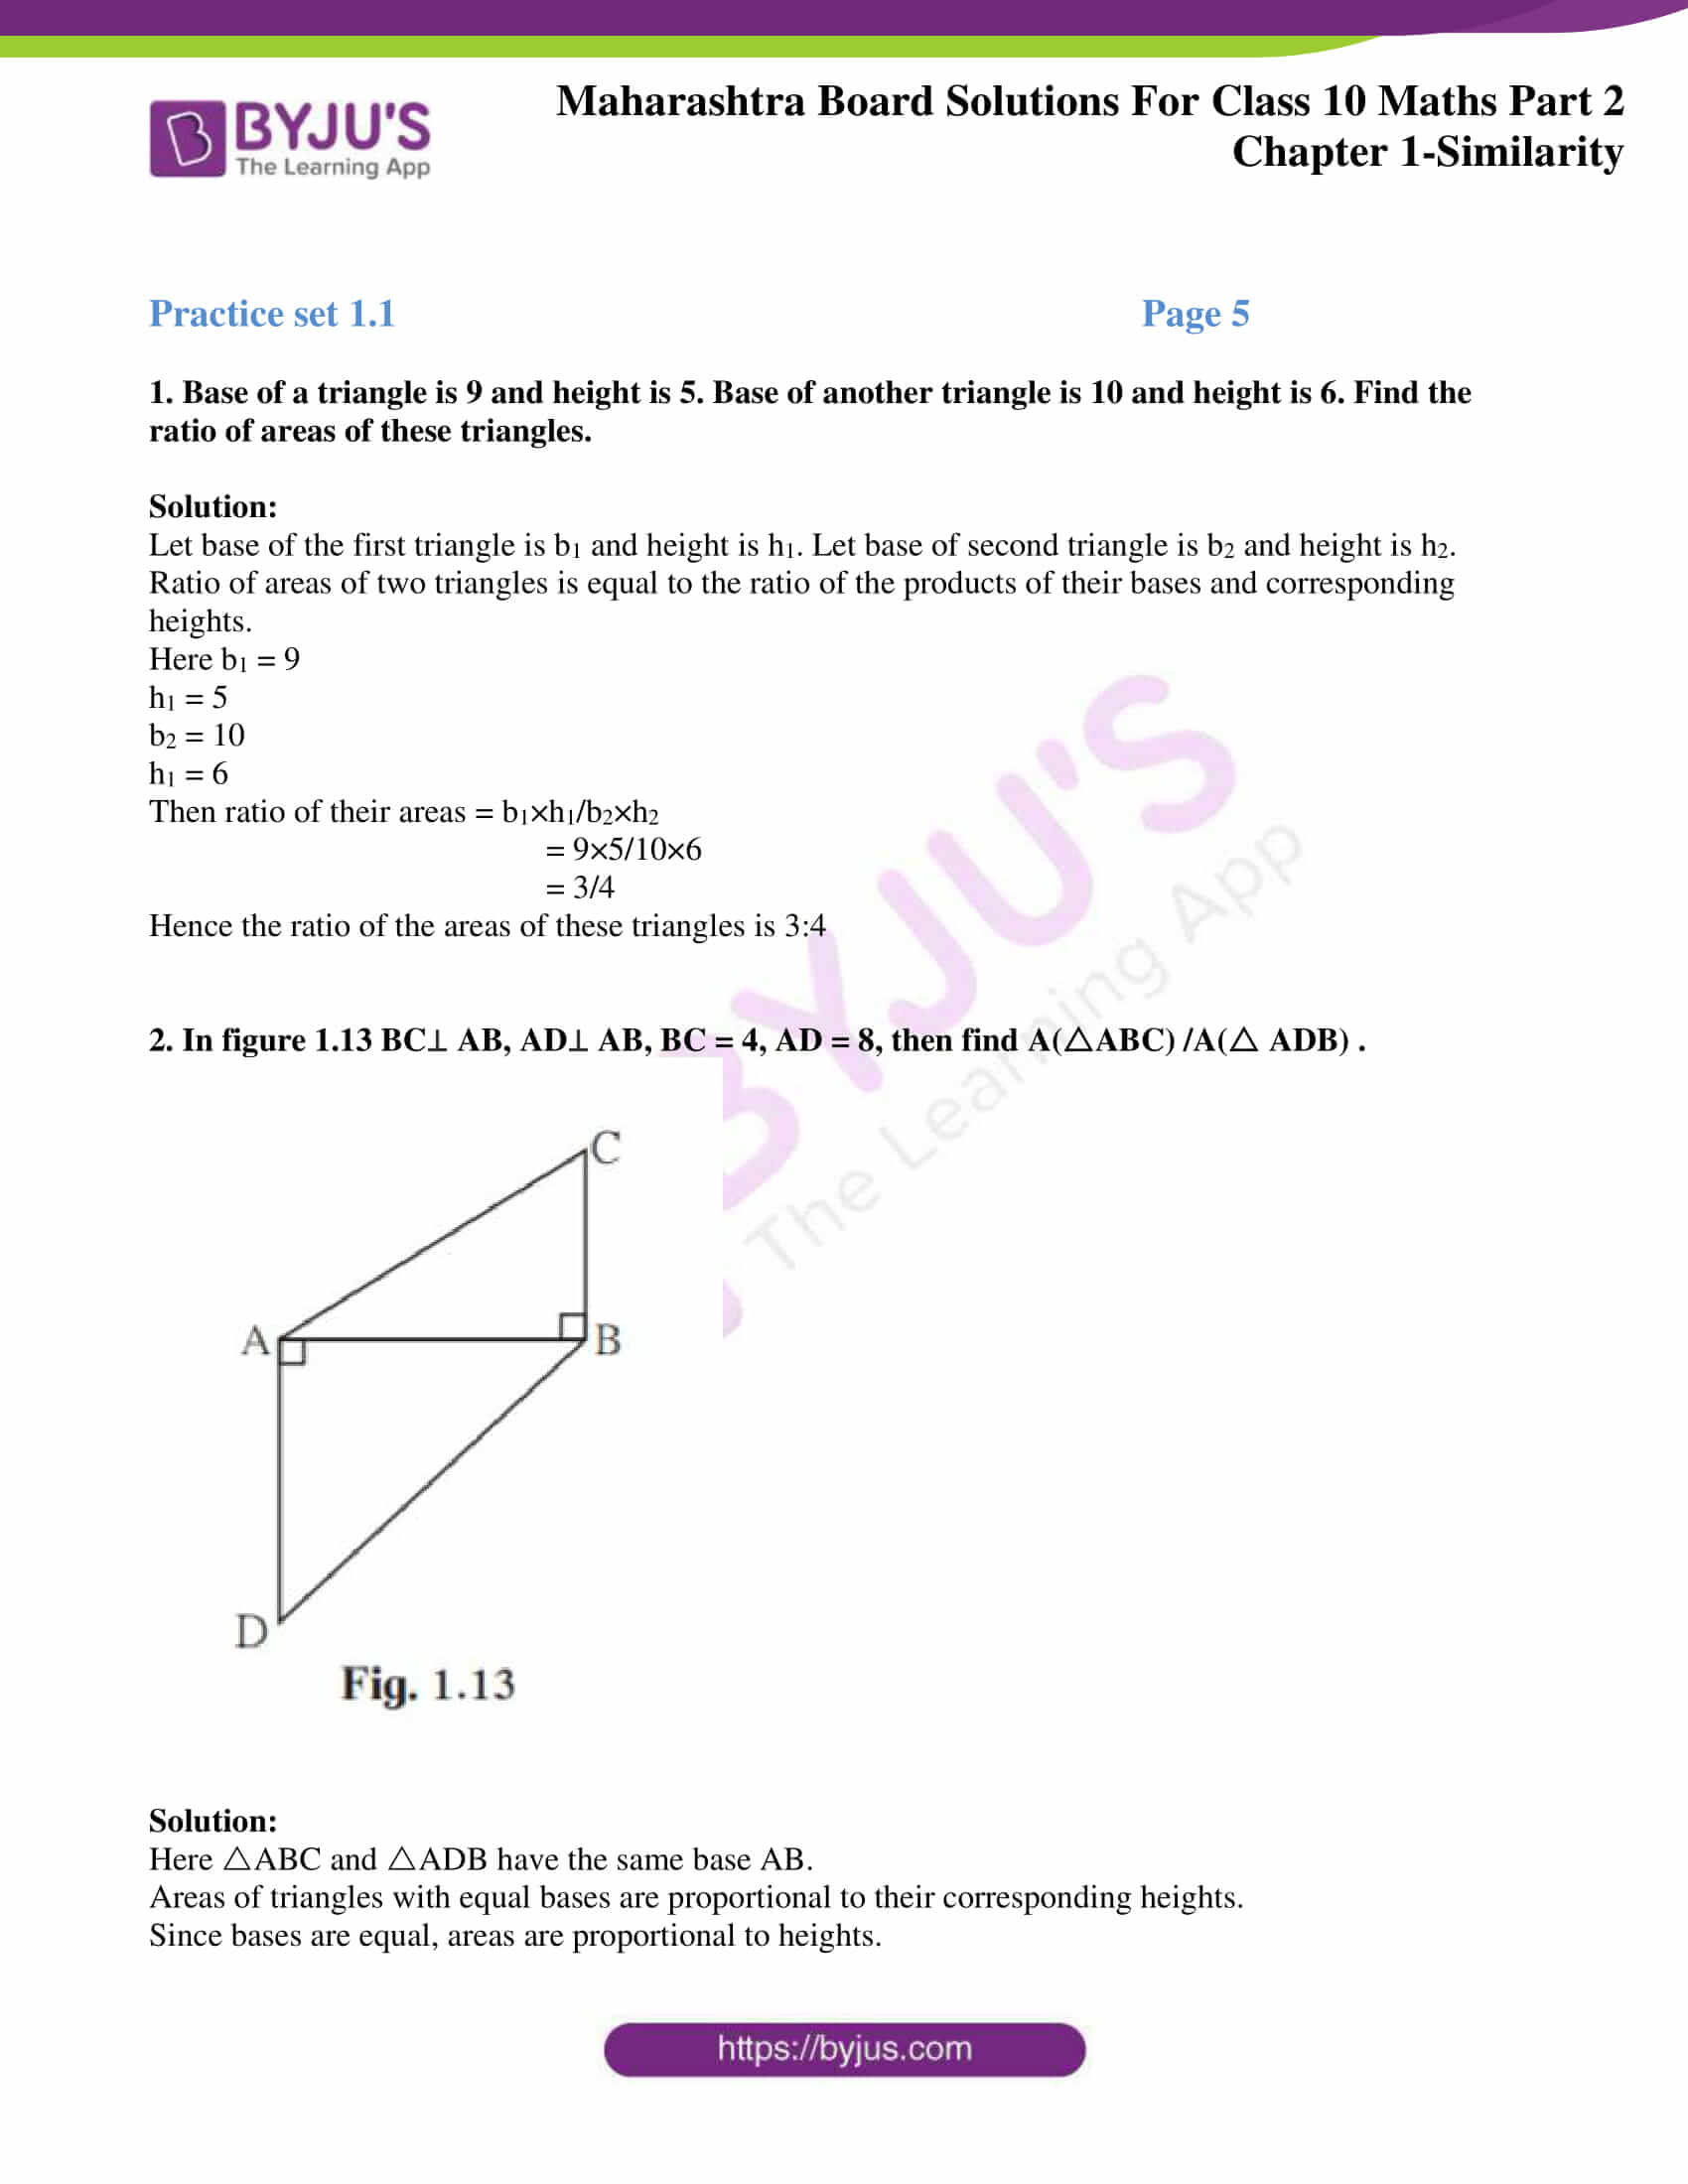 msbshse sol class 10 maths part 2 chapter 1 01